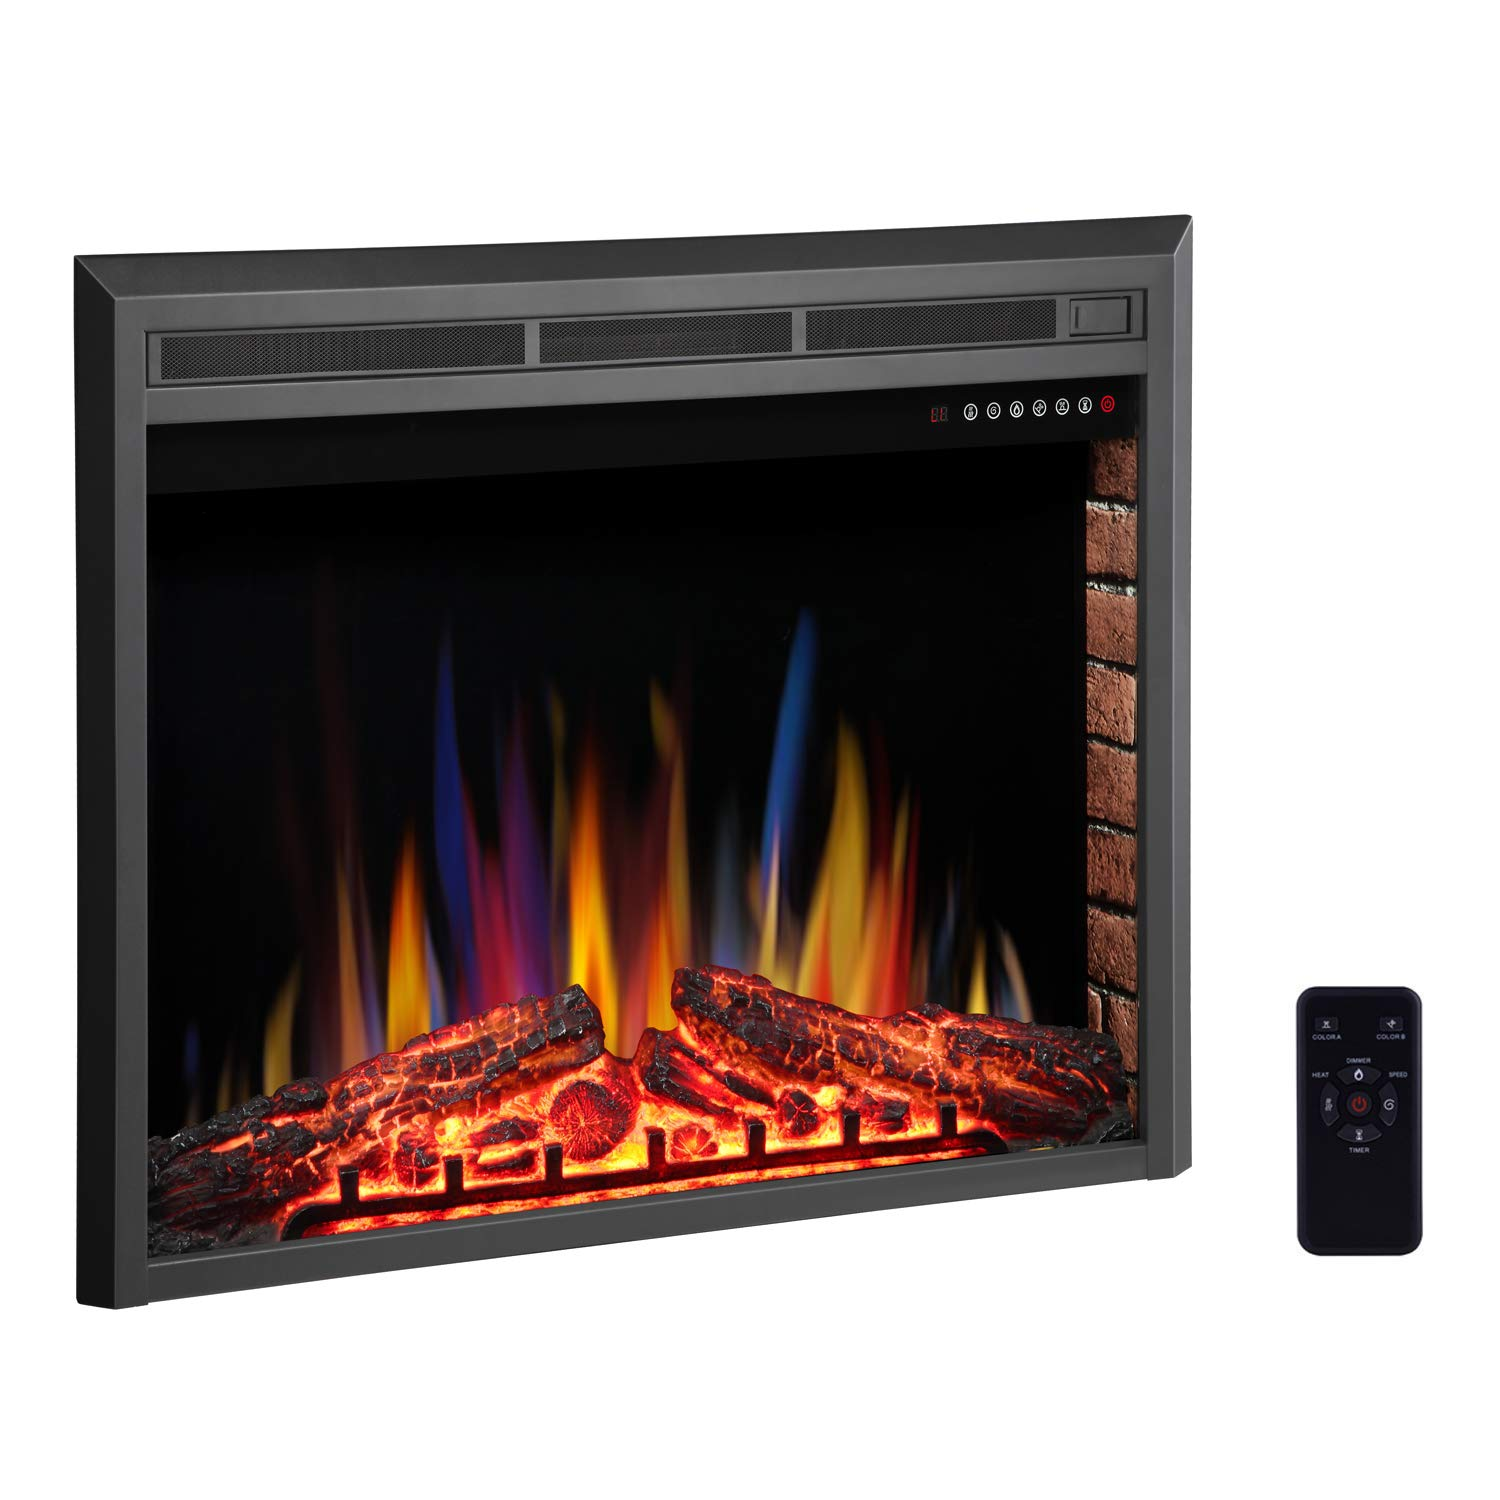 amazon com r w flame 36 electric fireplace insert freestanding rh amazon com 36 x 24 electric fireplace insert 36 electric fireplace insert with blower